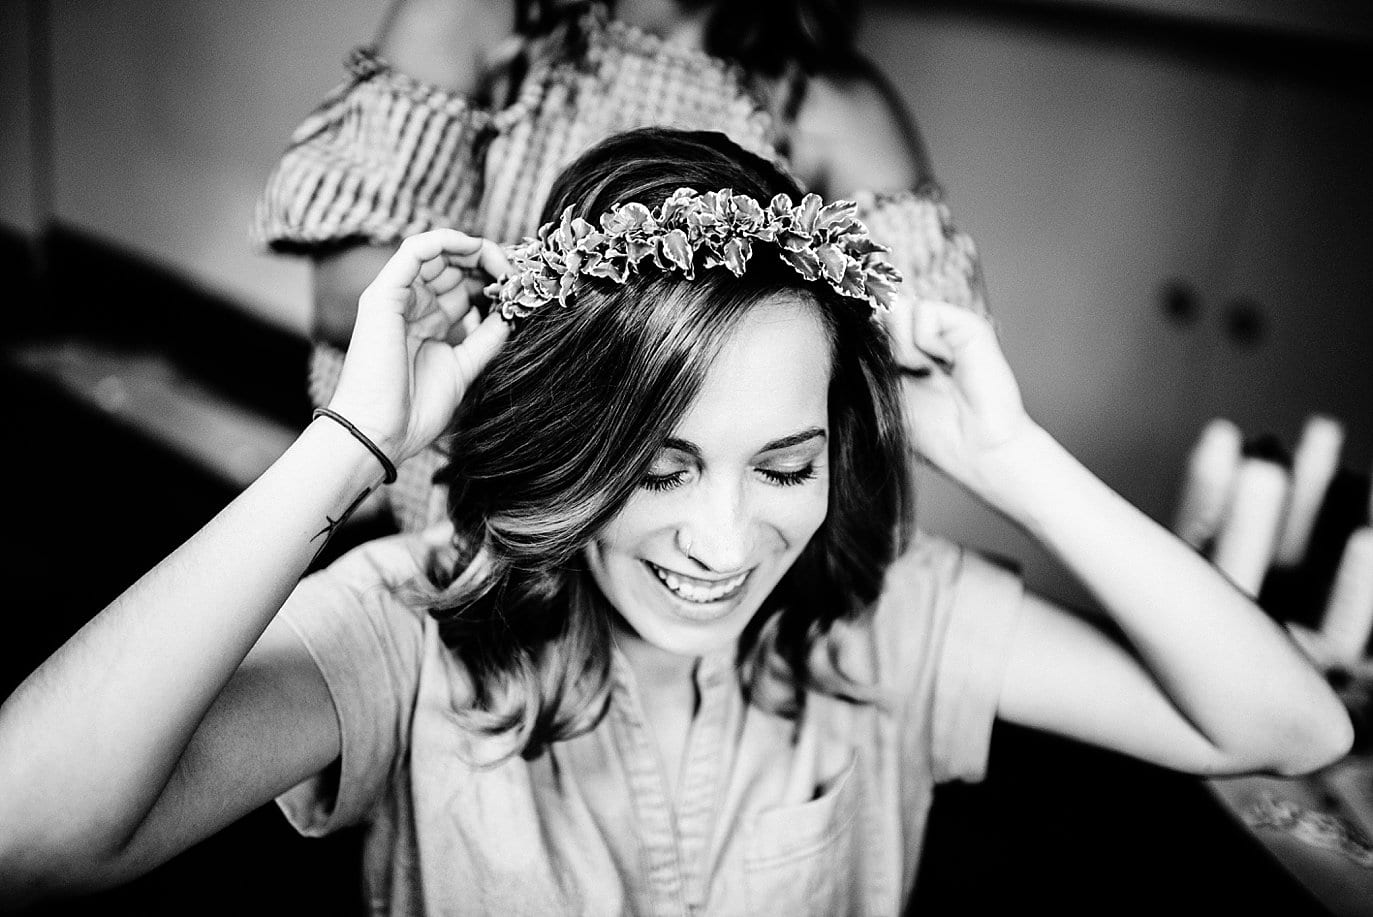 bride puts on floral crown at Arapahoe Basin wedding by Breckenridge wedding photographer Jennie Crate